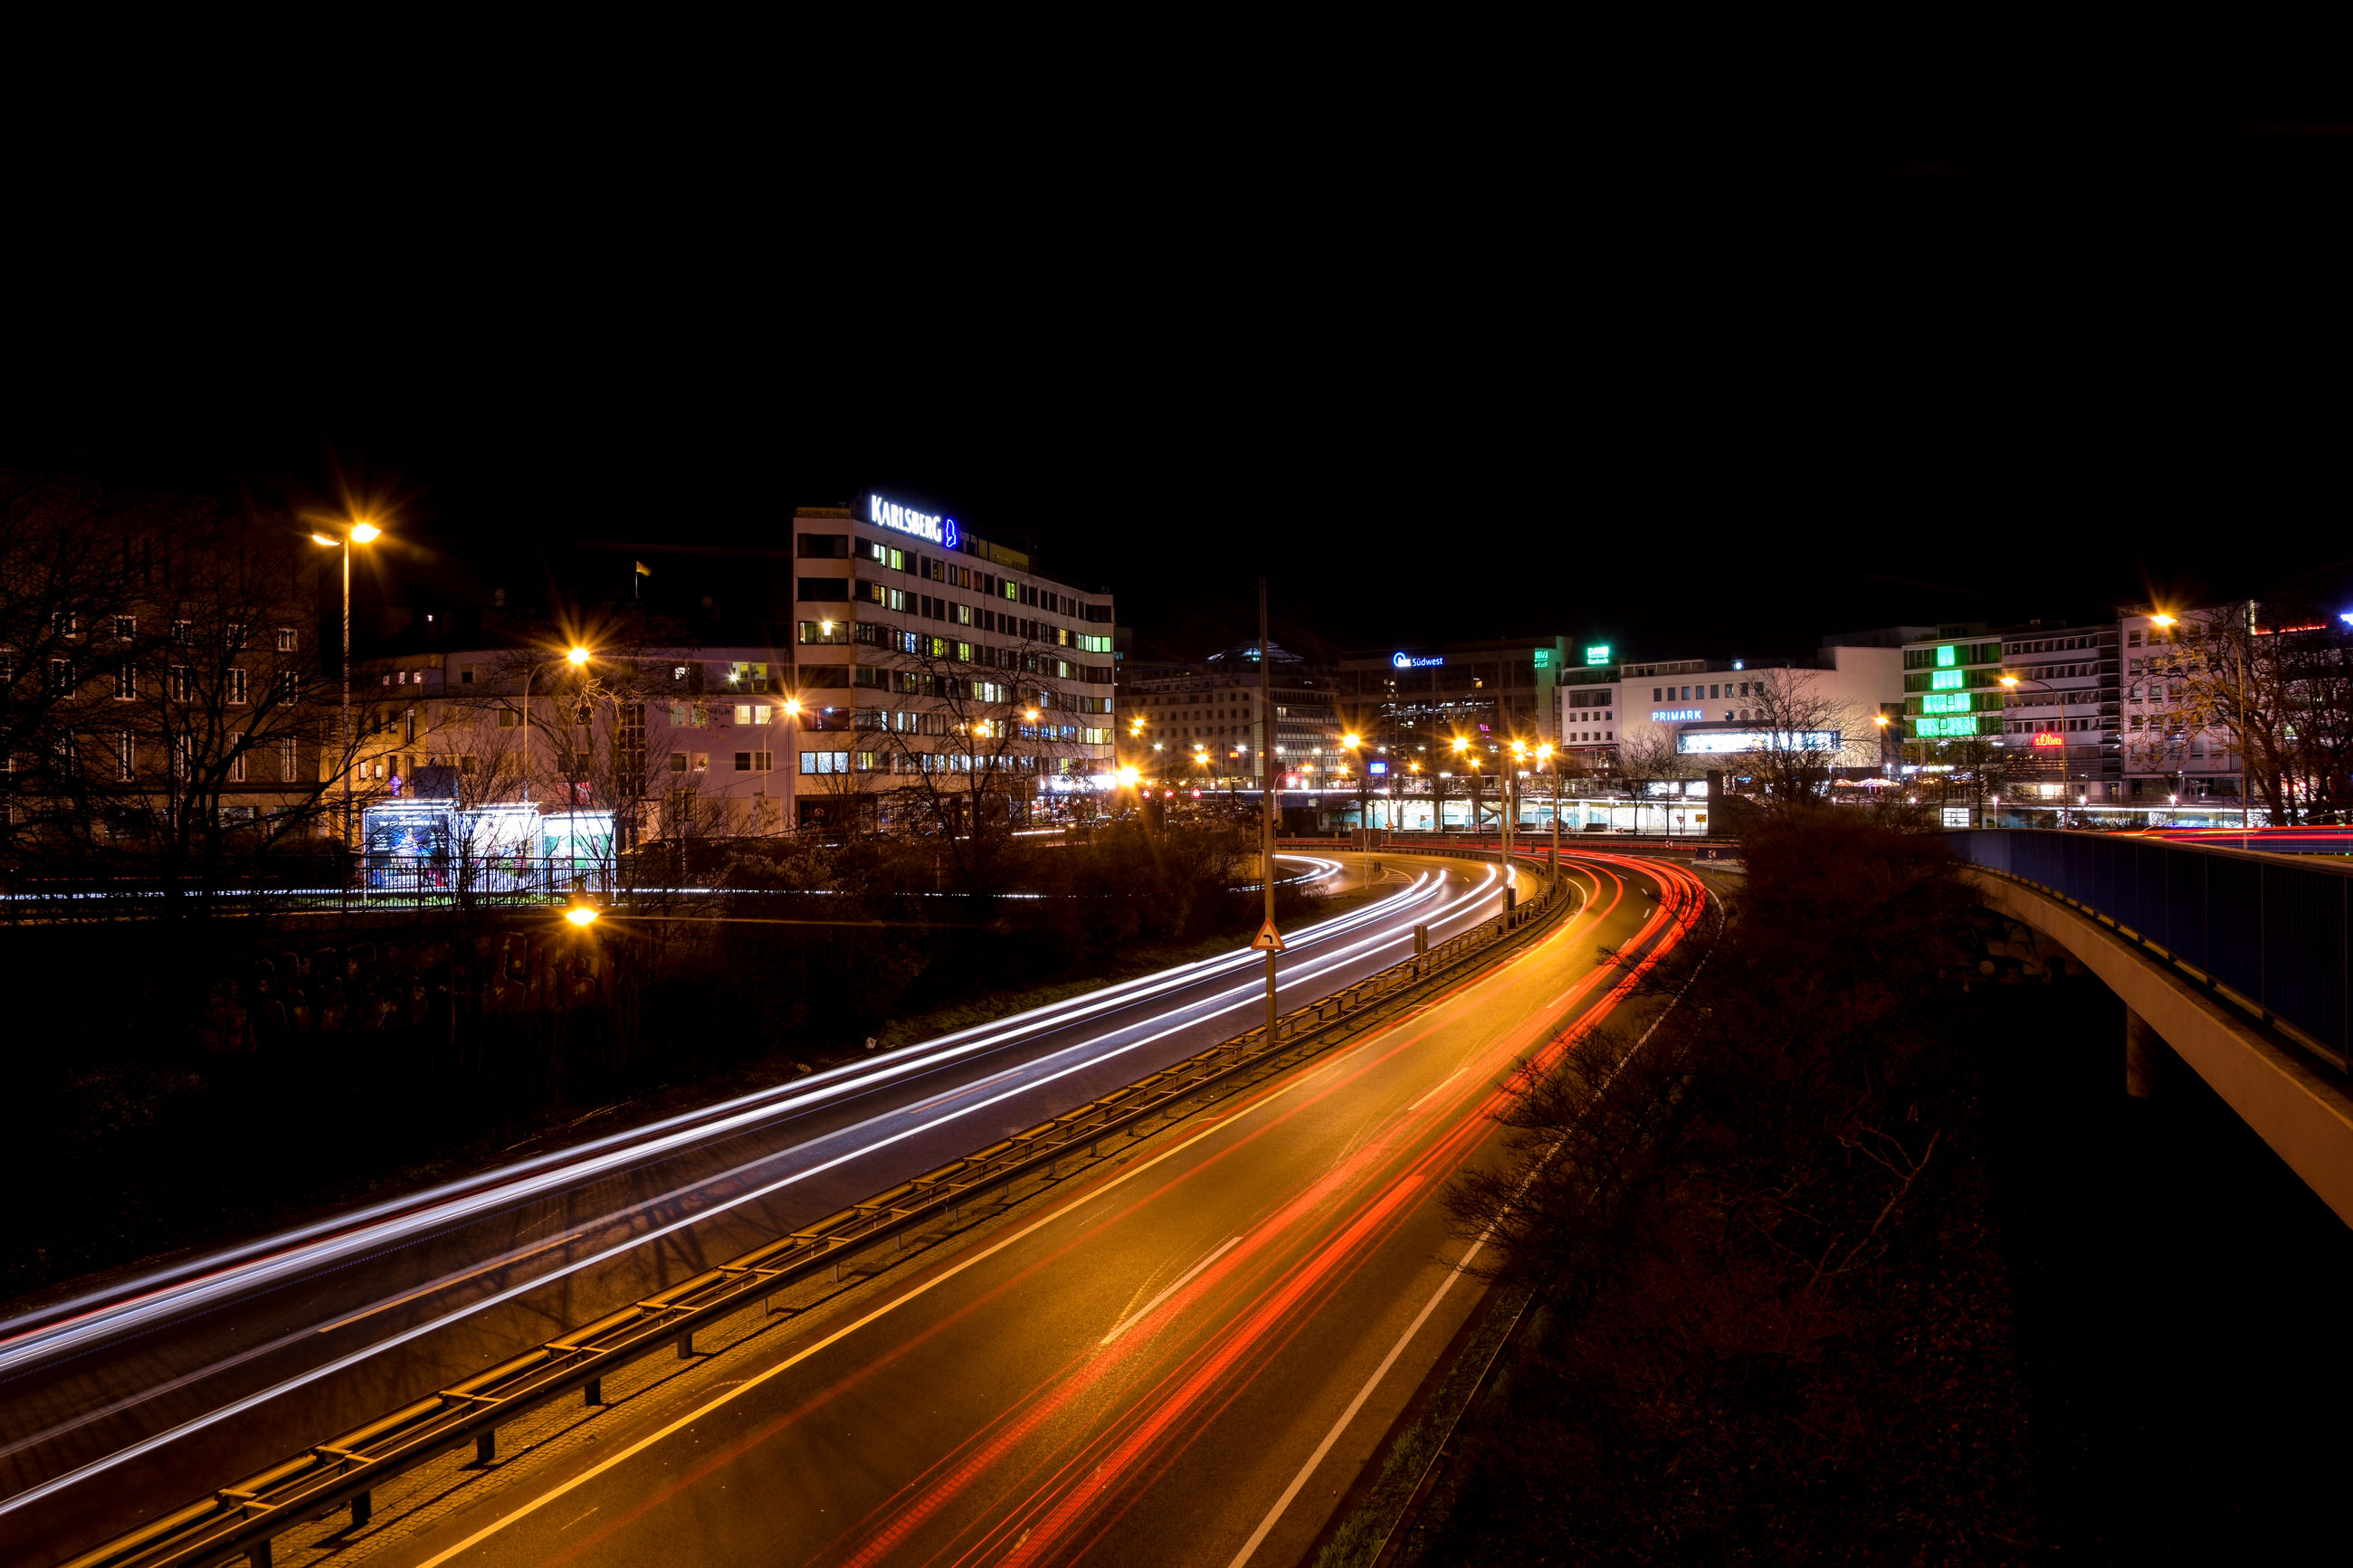 night, transportation, illuminated, city, traffic, long exposure, light trail, city life, road, high angle view, speed, motion, no people, outdoors, rush hour, business finance and industry, architecture, cityscape, sky